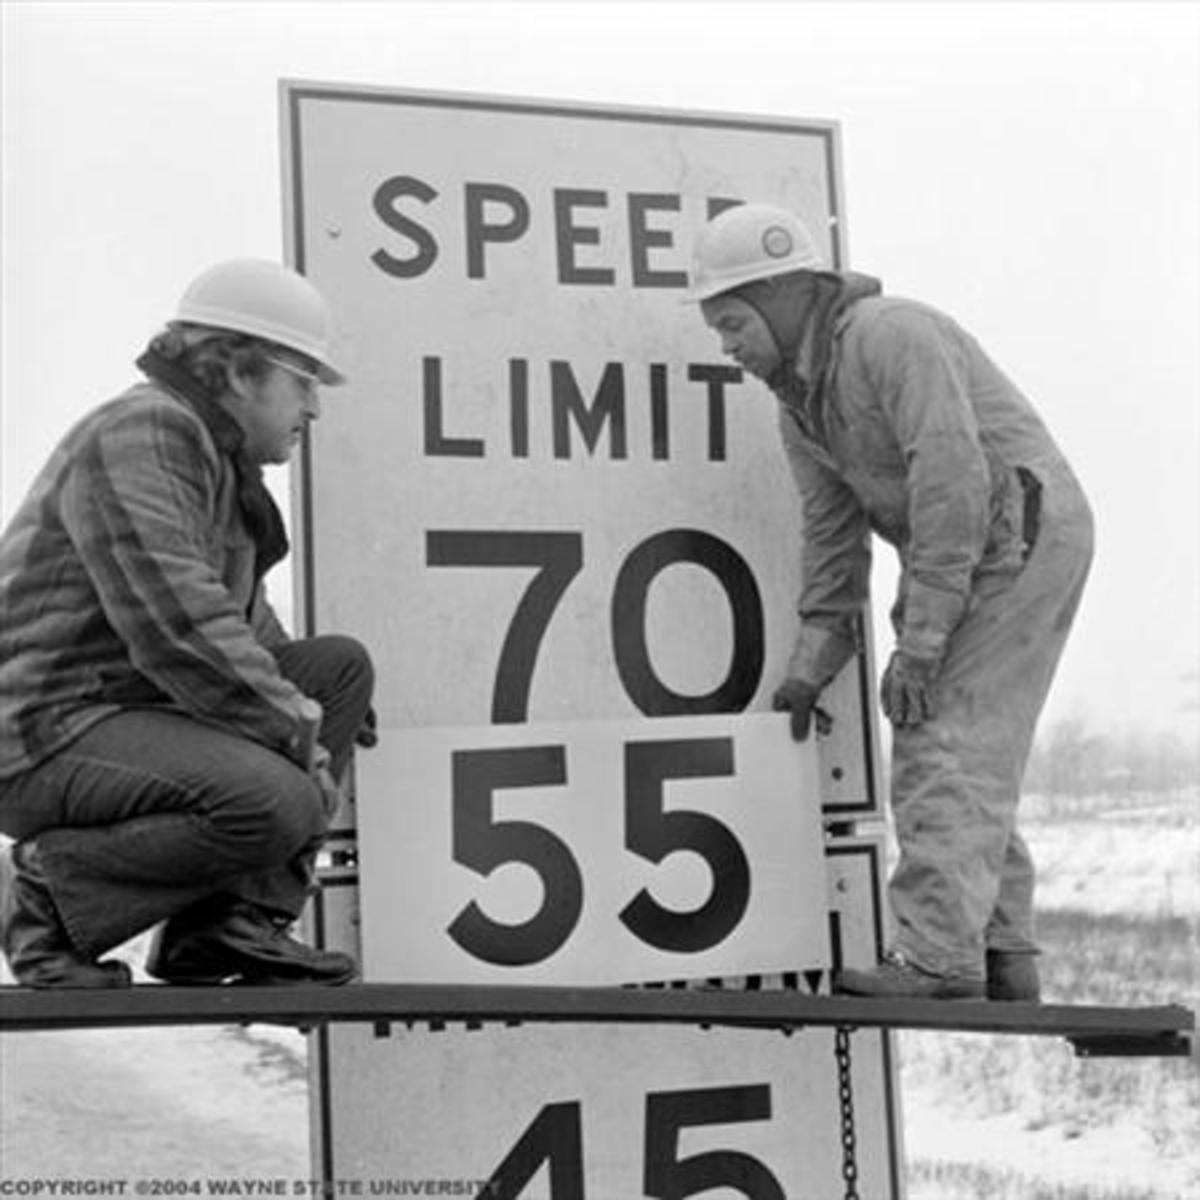 Years ago the speed was dropped to 55 nationally to decrease fuel consumption